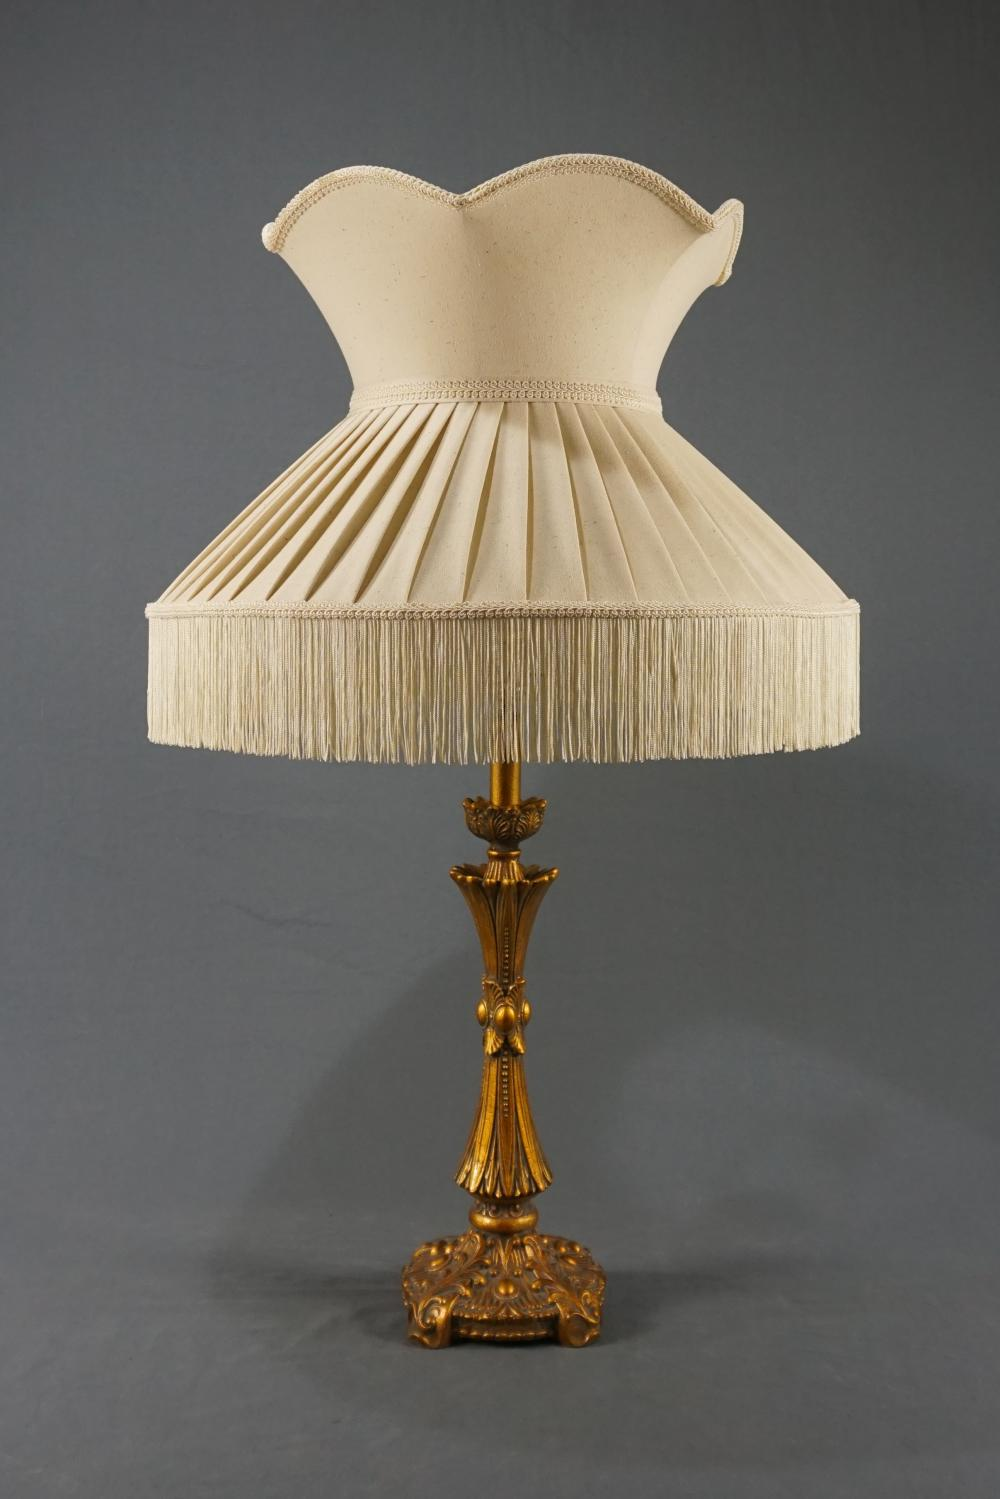 Tall Gold Toned Lamp with Fringed Shade